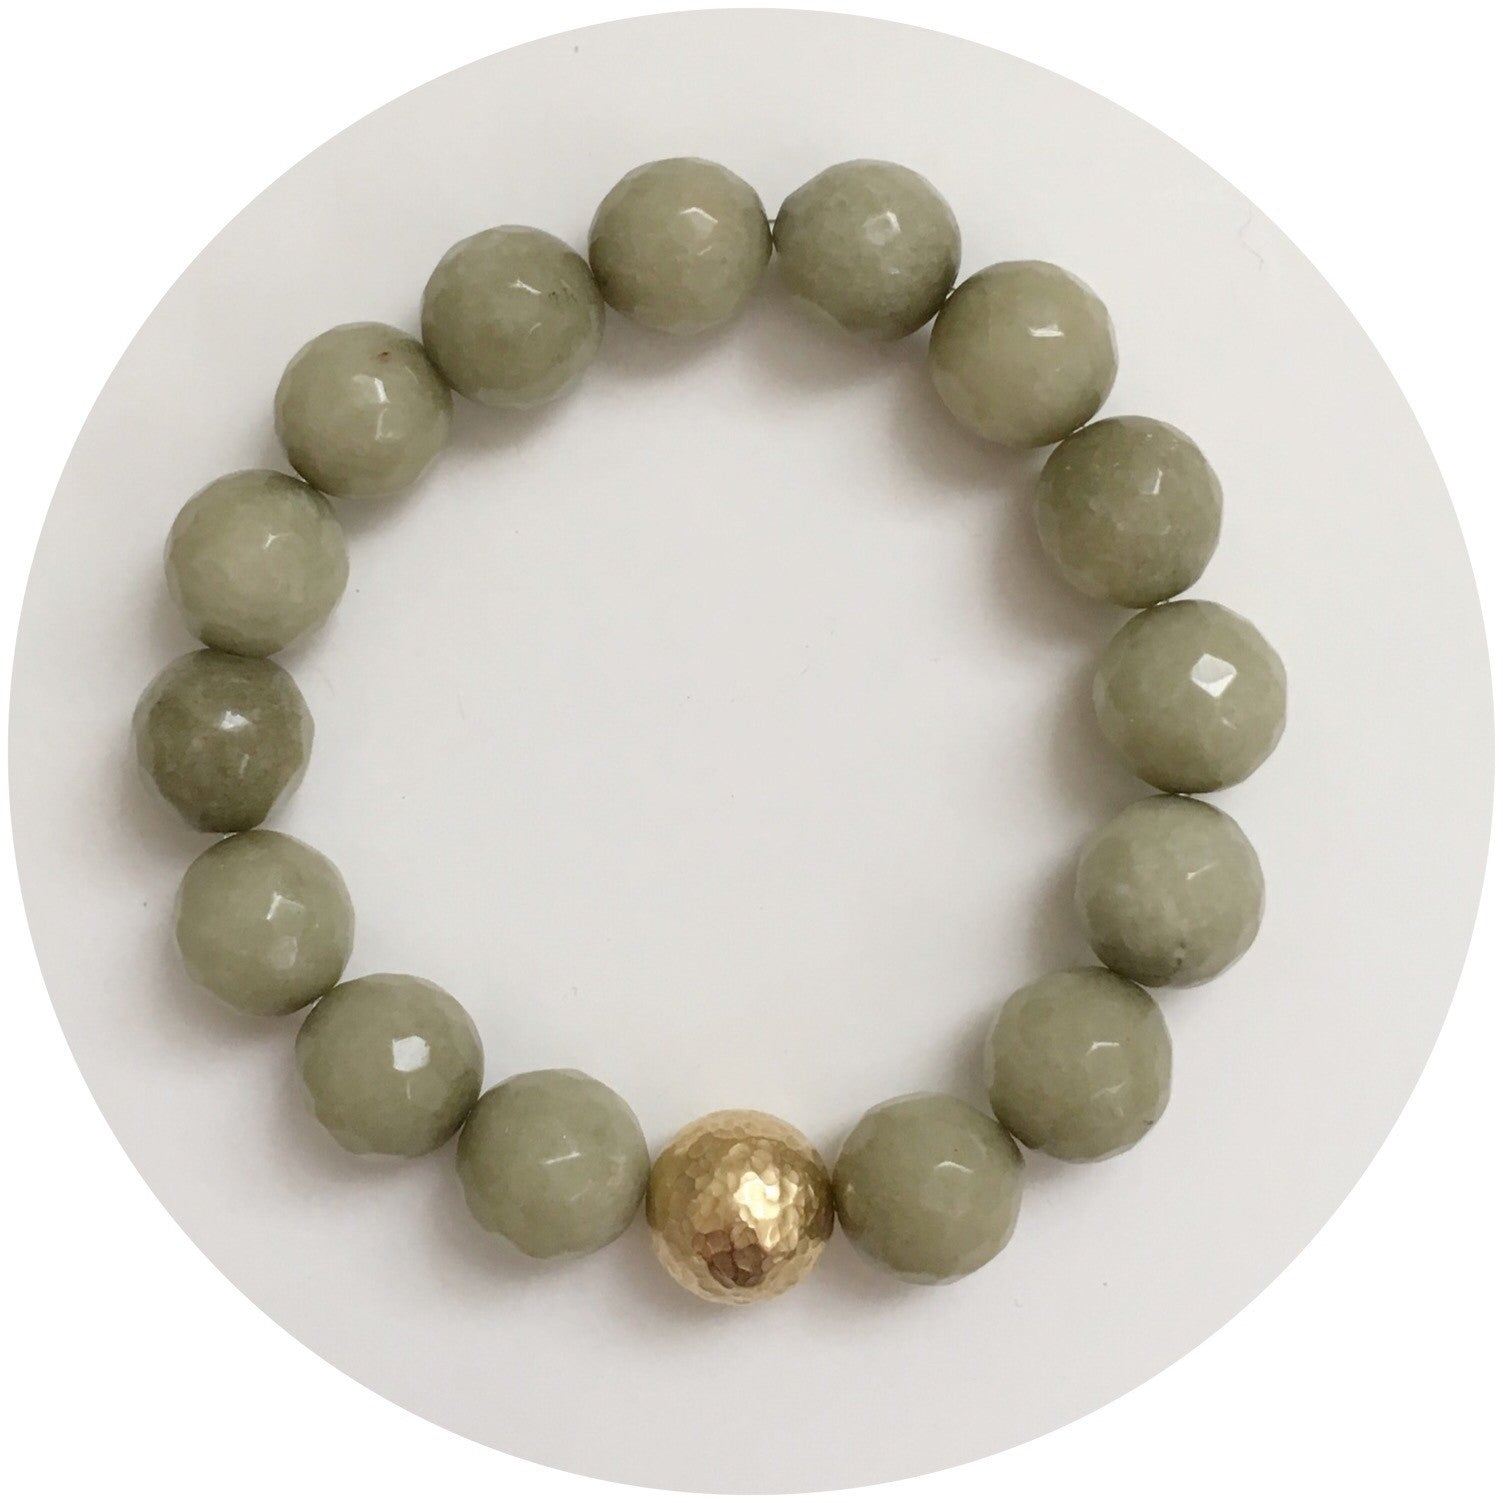 Pistachio Jade with Hammered Gold Accent - Oriana Lamarca LLC